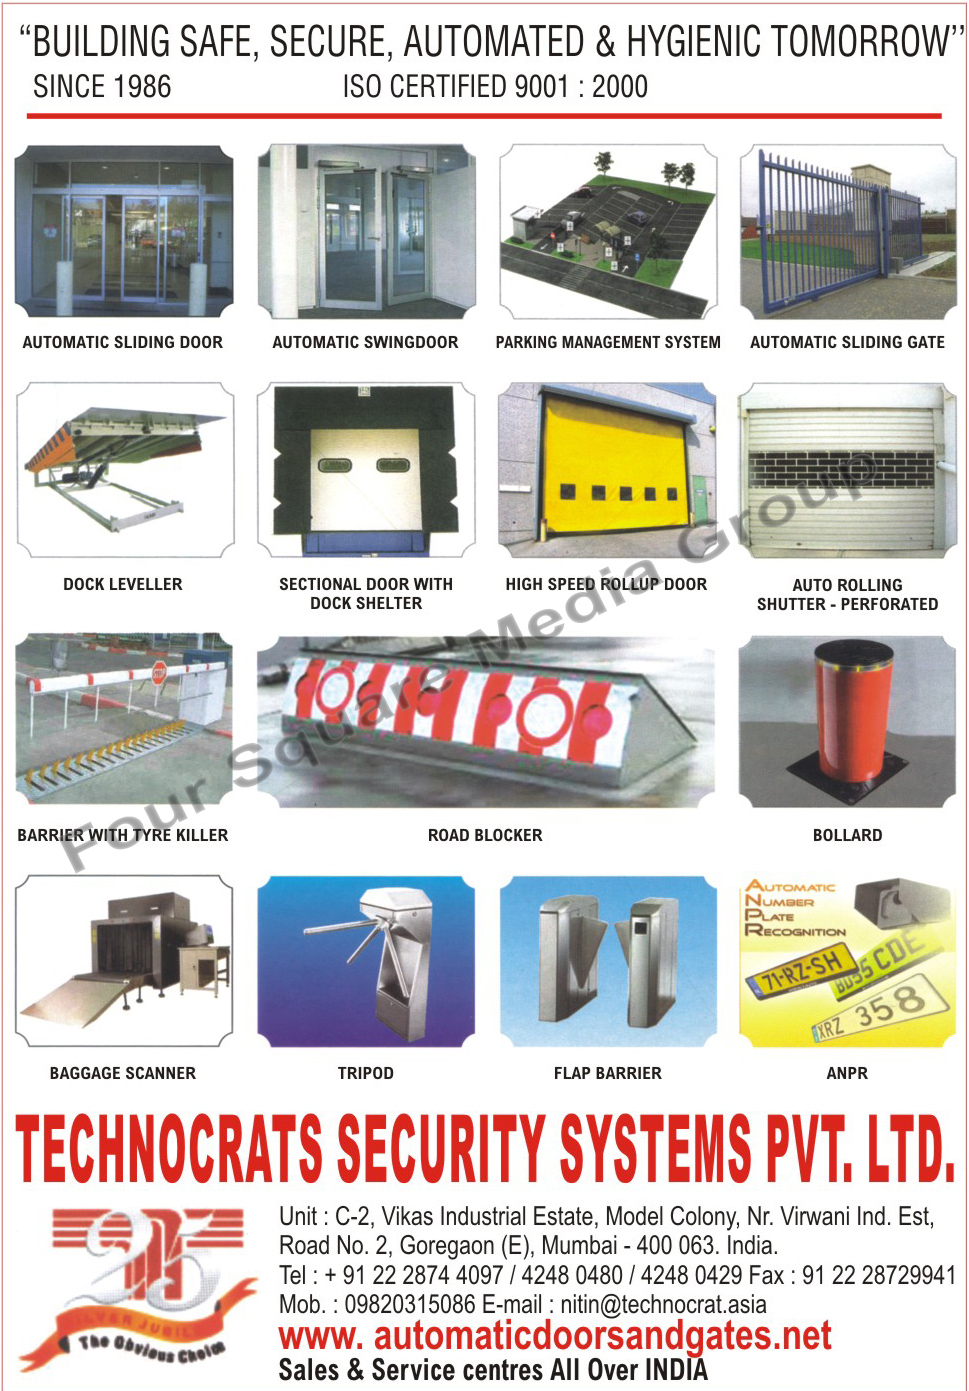 Access Control Systems, Video Surveillance Systems, Fire Detection systems, Alarm Detection Systems, Building Automation Systems, Building Management Systems, Automatic Sliding Doors, Automatic Swingdoors, Automatic Swing Doors, Parking Management Systems, Automatic Sliding Gates, Dock Levellers, Sectional Doors, High Speed Rollup Doors, Auto Rolling Shutter Perforated, Barriers, Road Blockers, Bollards, Baggage Scanners, Tripods, Flap Barriers, ANPR